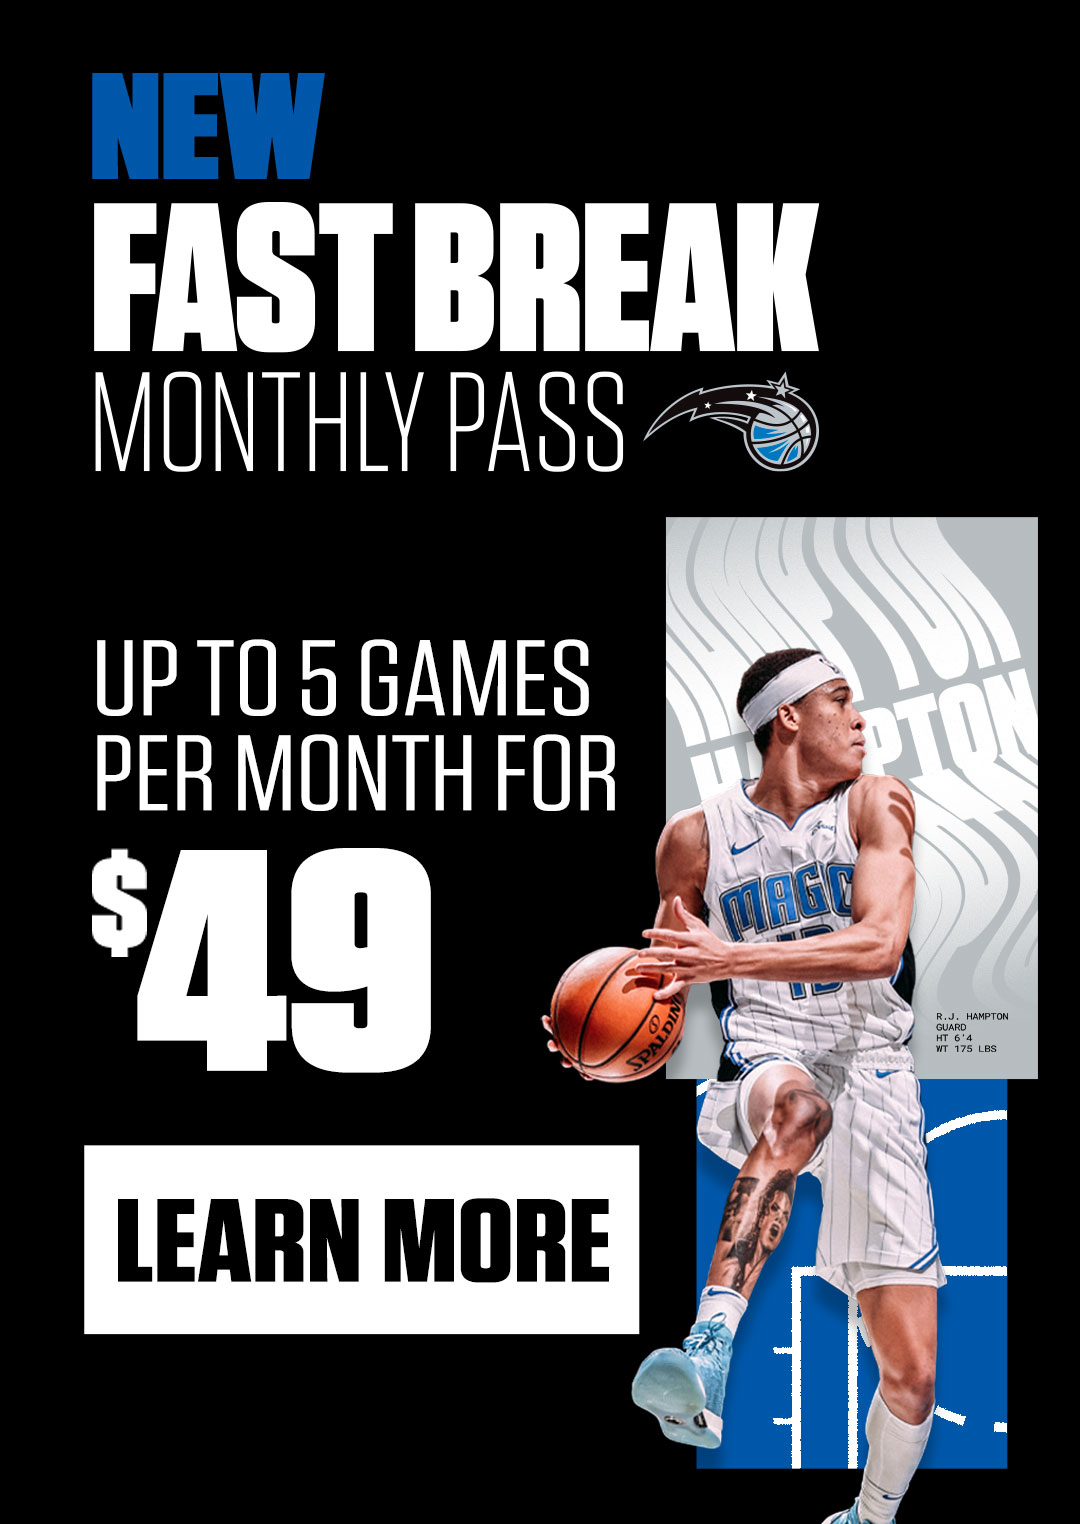 Up to 5 games a month for only $49, click here to learn more.